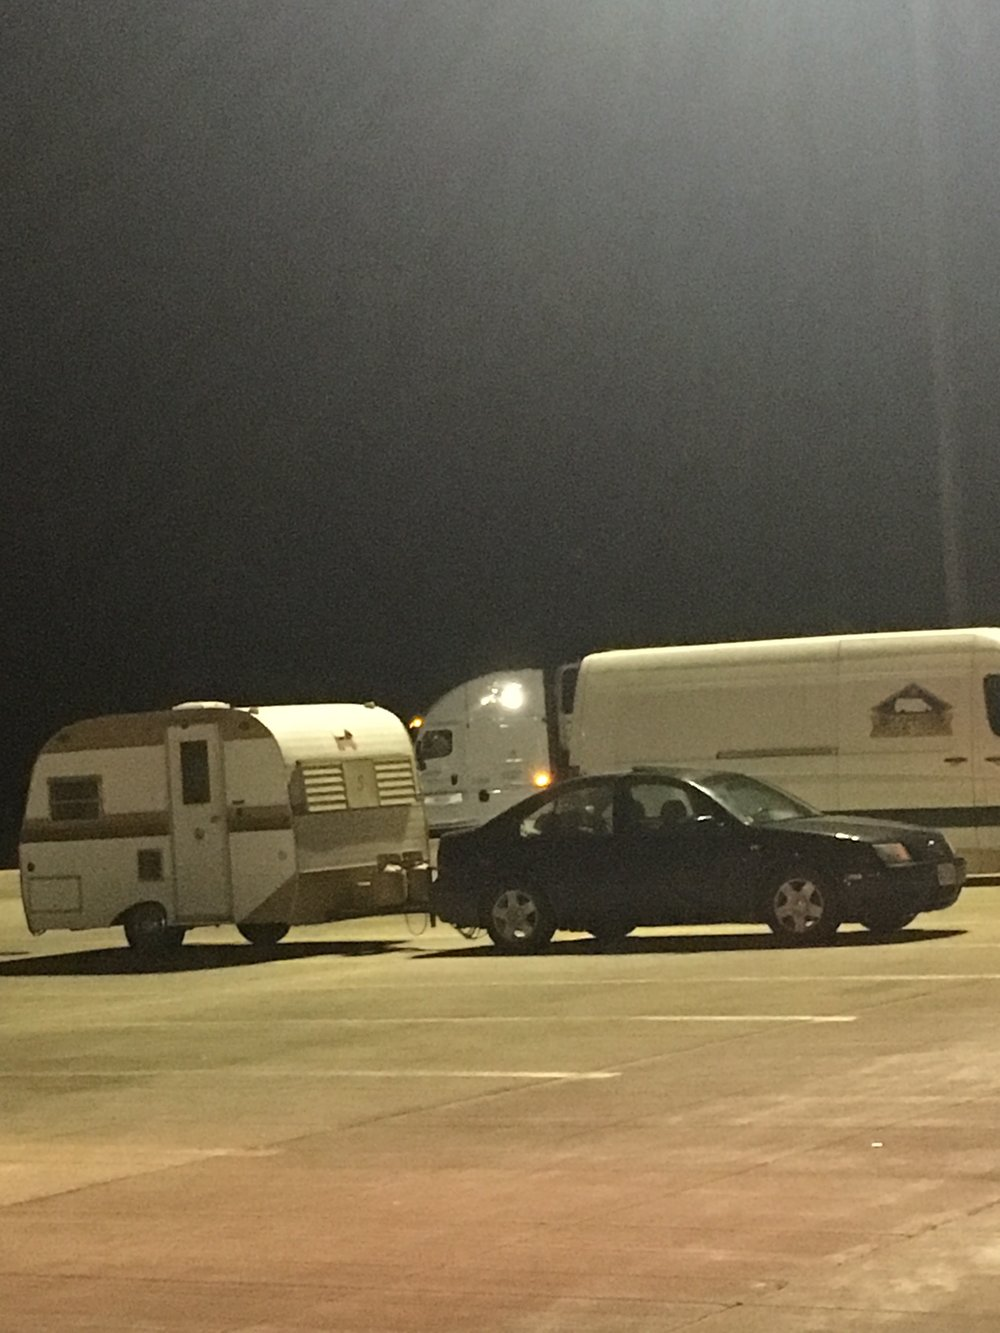 Spotted at the last New York rest stop we pulled of at. Who knew a Jetta could tow?